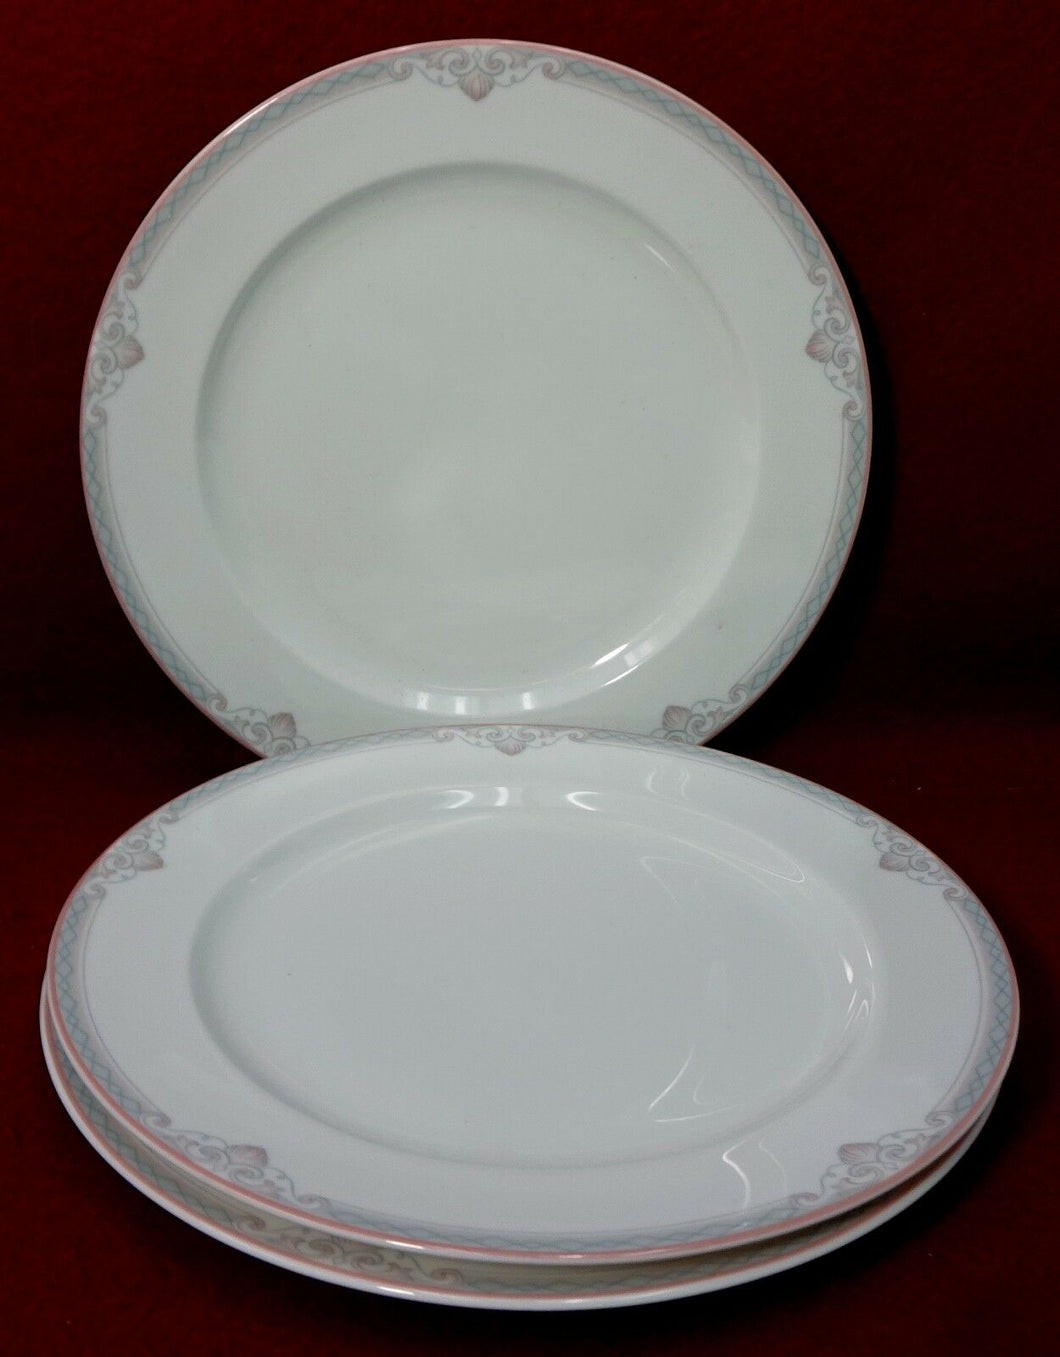 LENOX china HATTERAS 7822 pattern BREAD PLATE - Set of Three (3) - 7